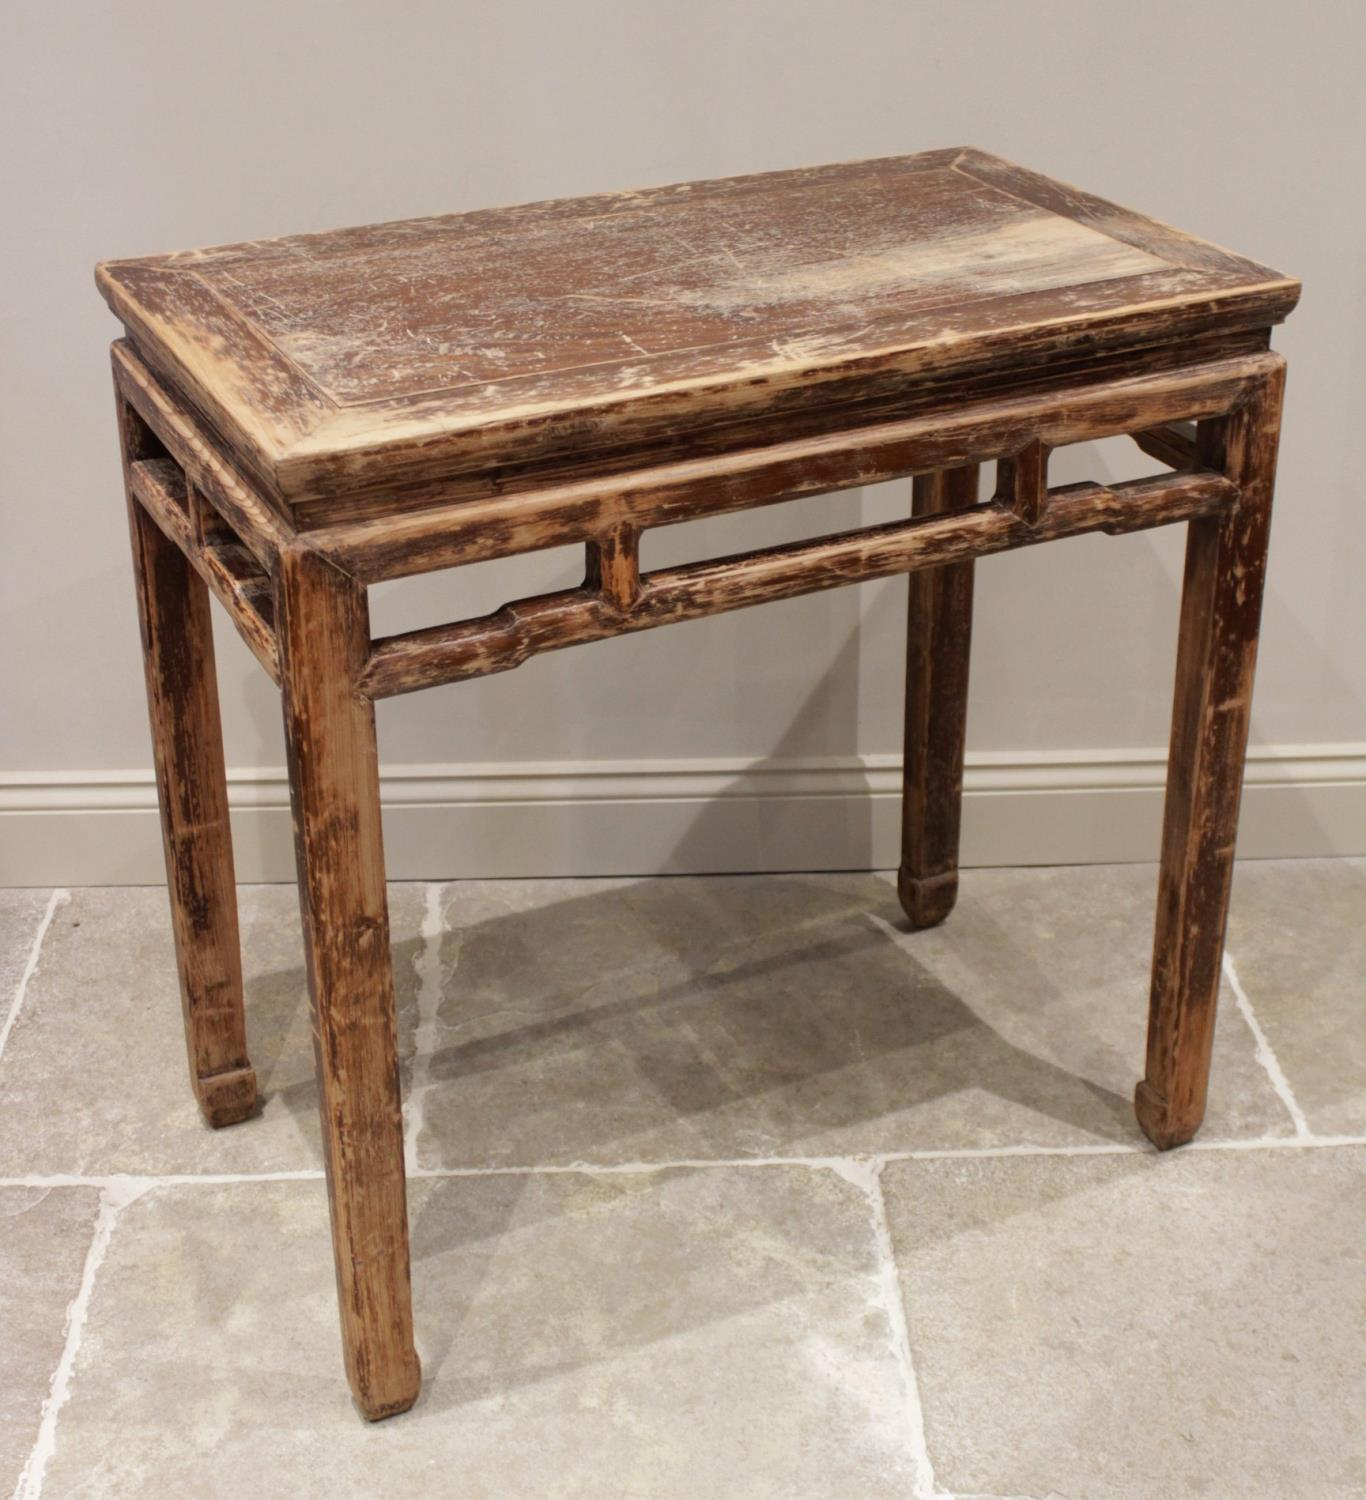 A Chinese stained wood altar table, 20th century, the cleated rectangular top above an inverted